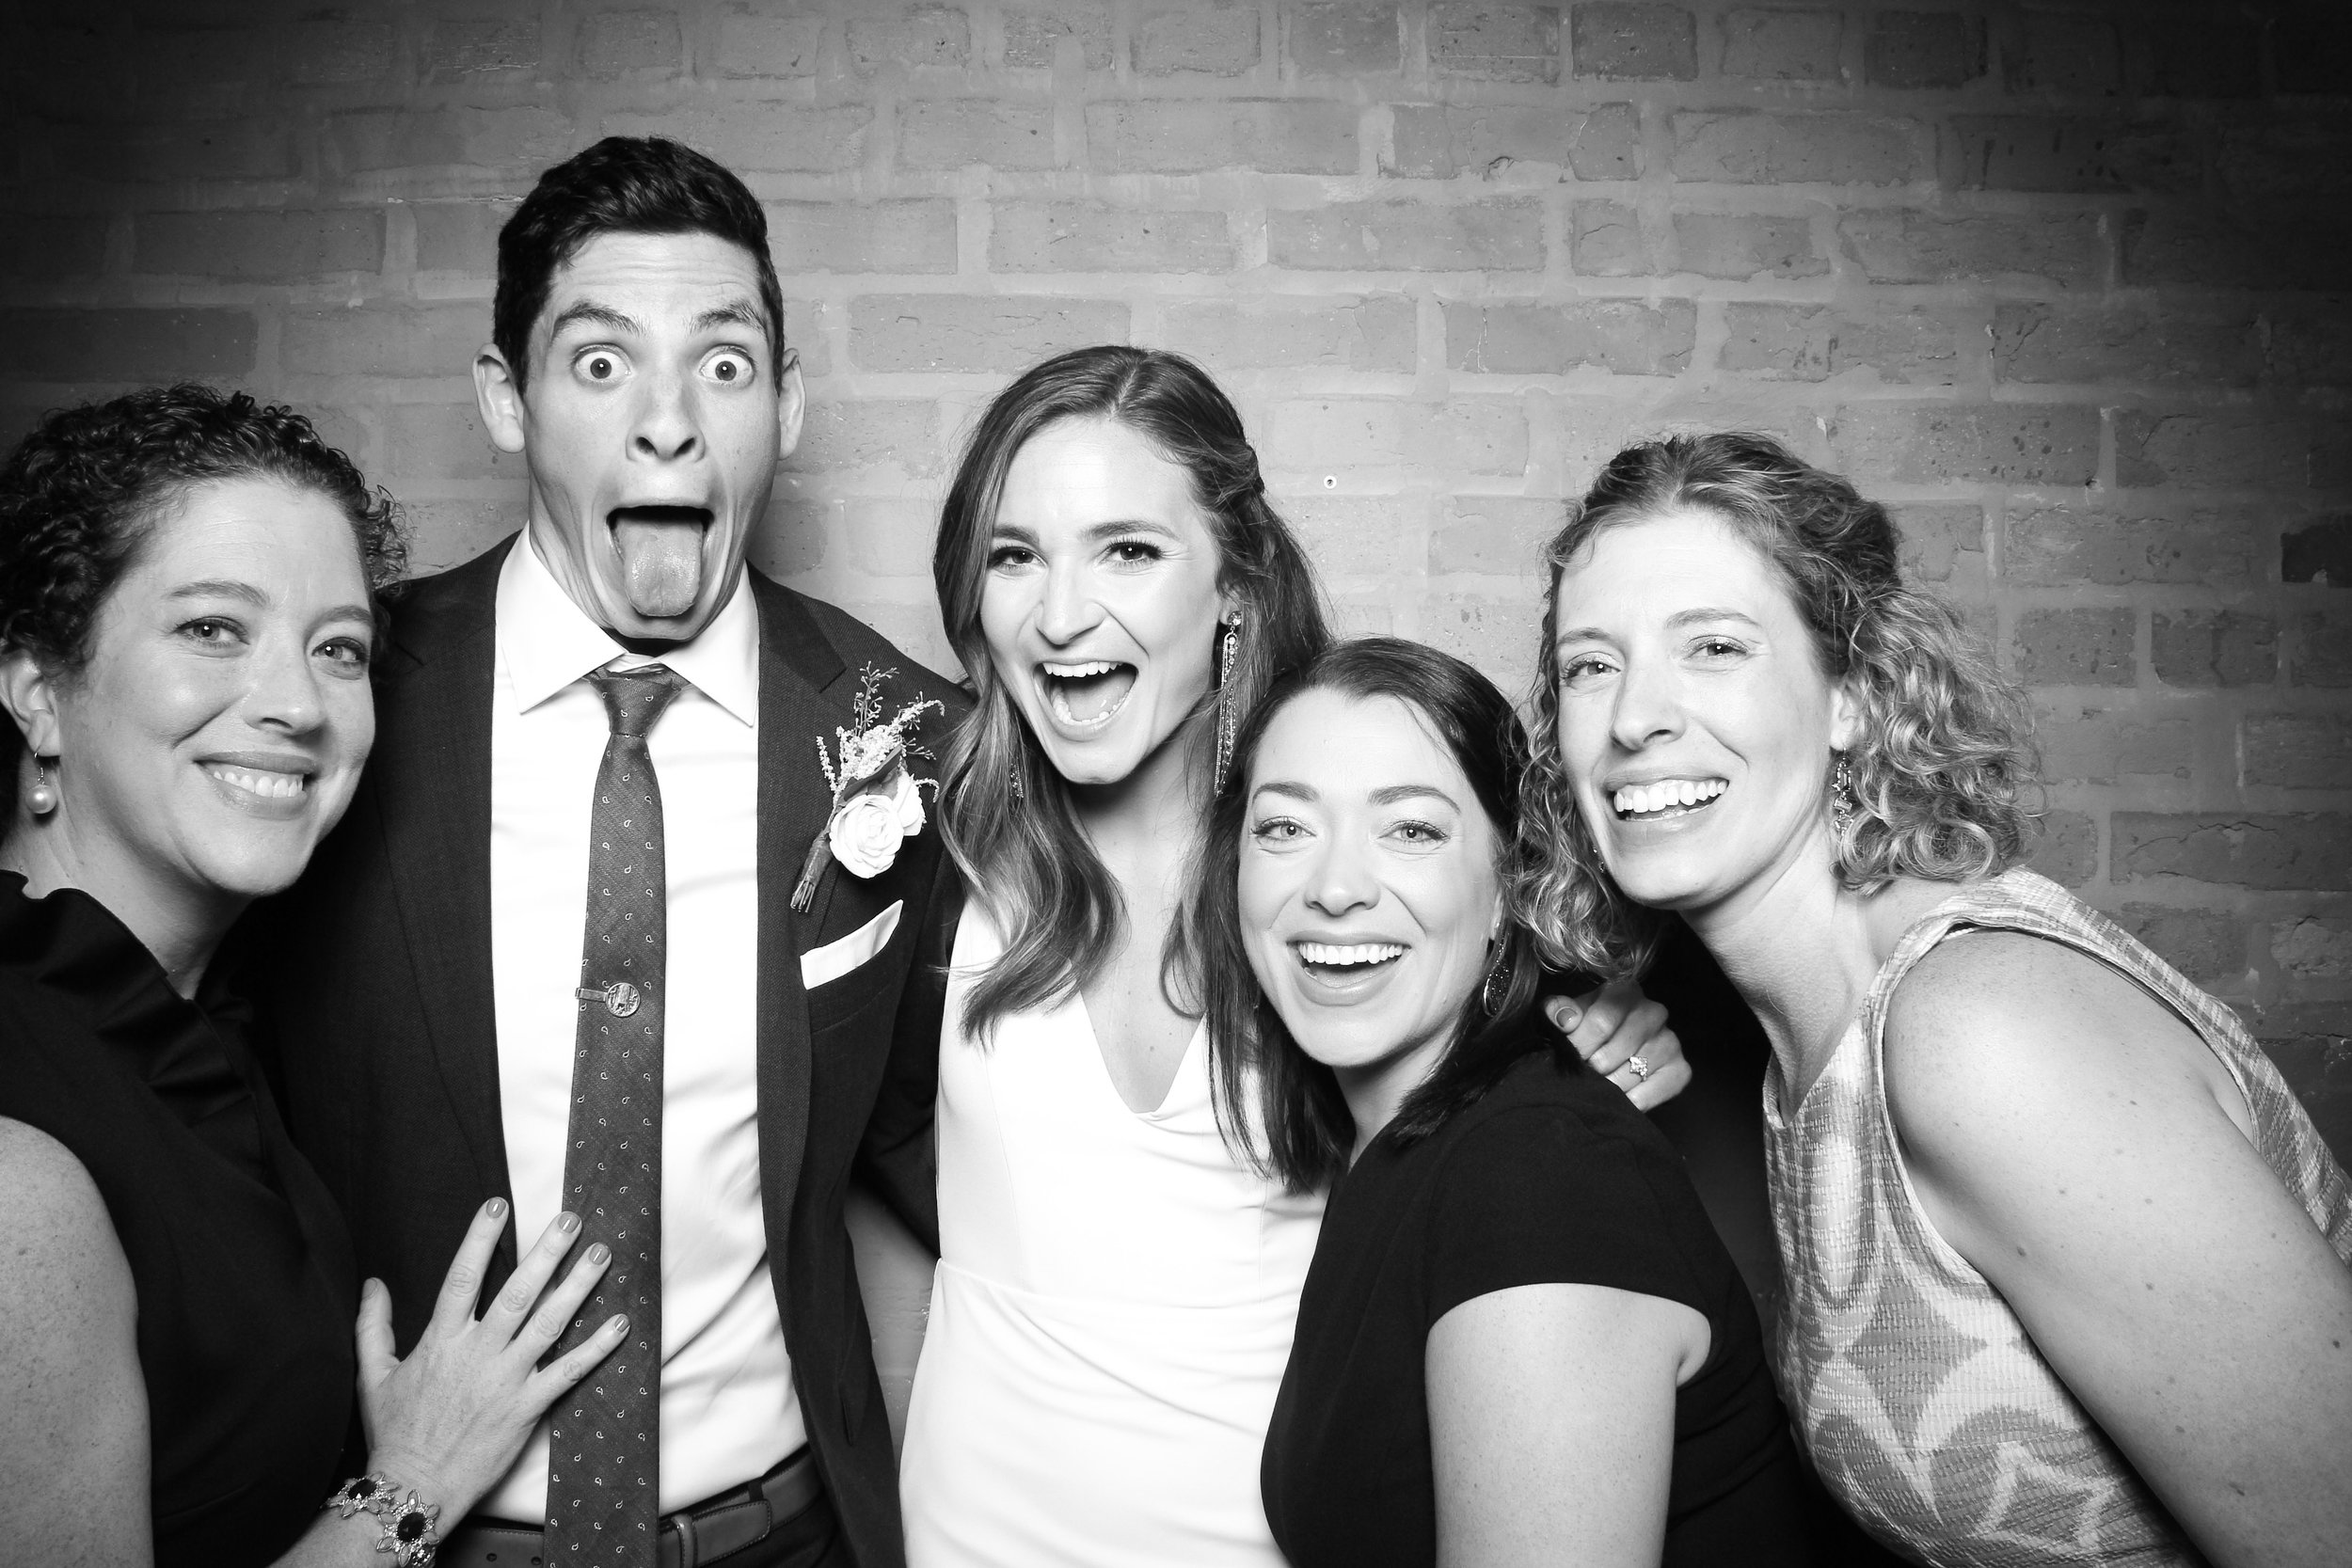 Chicago_Vintage_Wedding_Photobooth_Fairlie_13.jpg